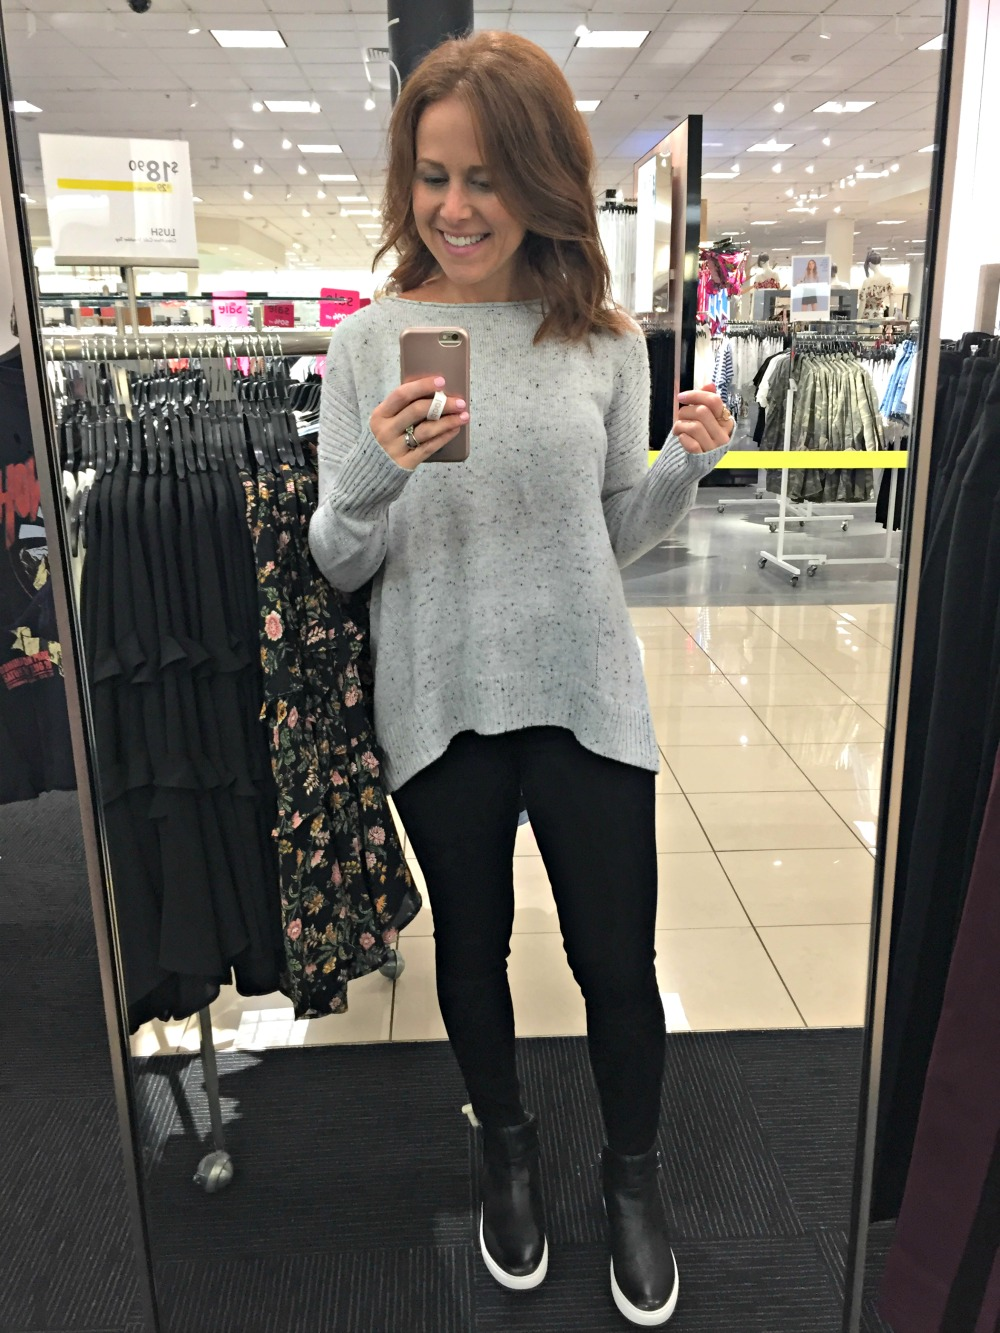 Nordstrom Anniversary sale 2017 // The Modern Savvy shares her 50 top finds, plus lots of dressing room selfies to see how everything looks on a real girl - Nordstrom Anniversary Sale Top 50 Picks featured by popular Florida style blogger, The Modern Savvy